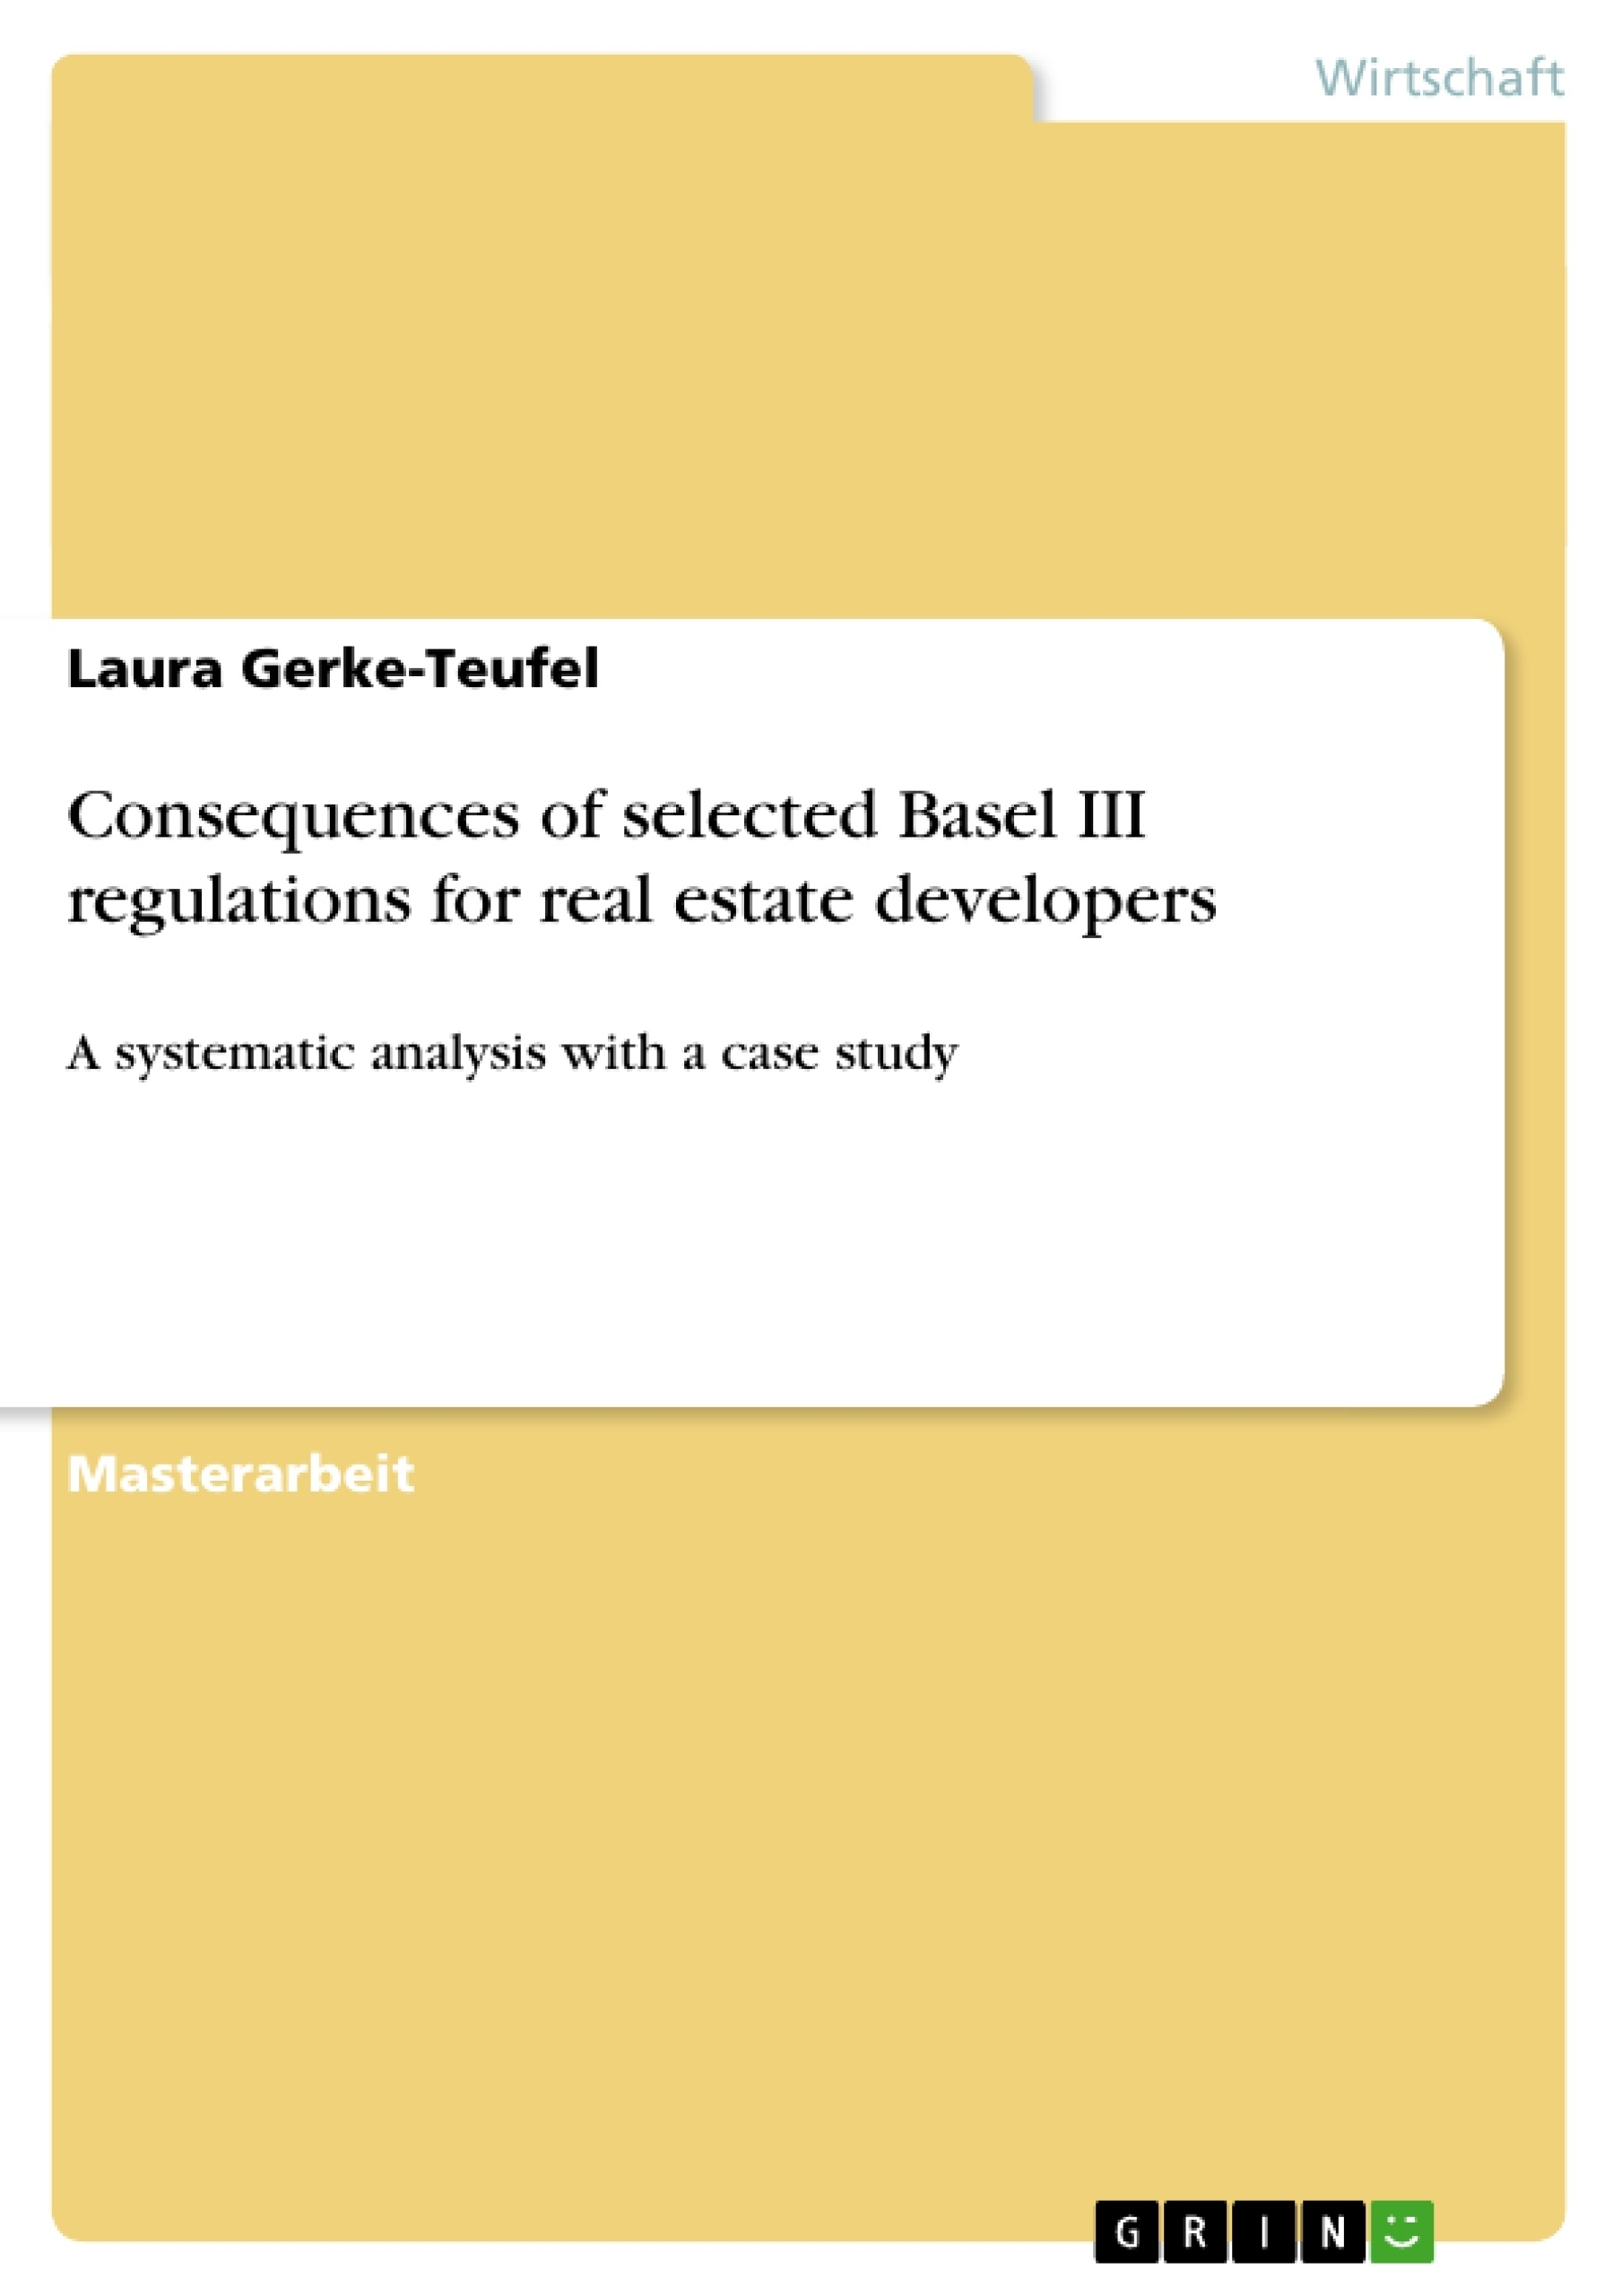 Titel: Consequences of selected Basel III regulations for real estate developers